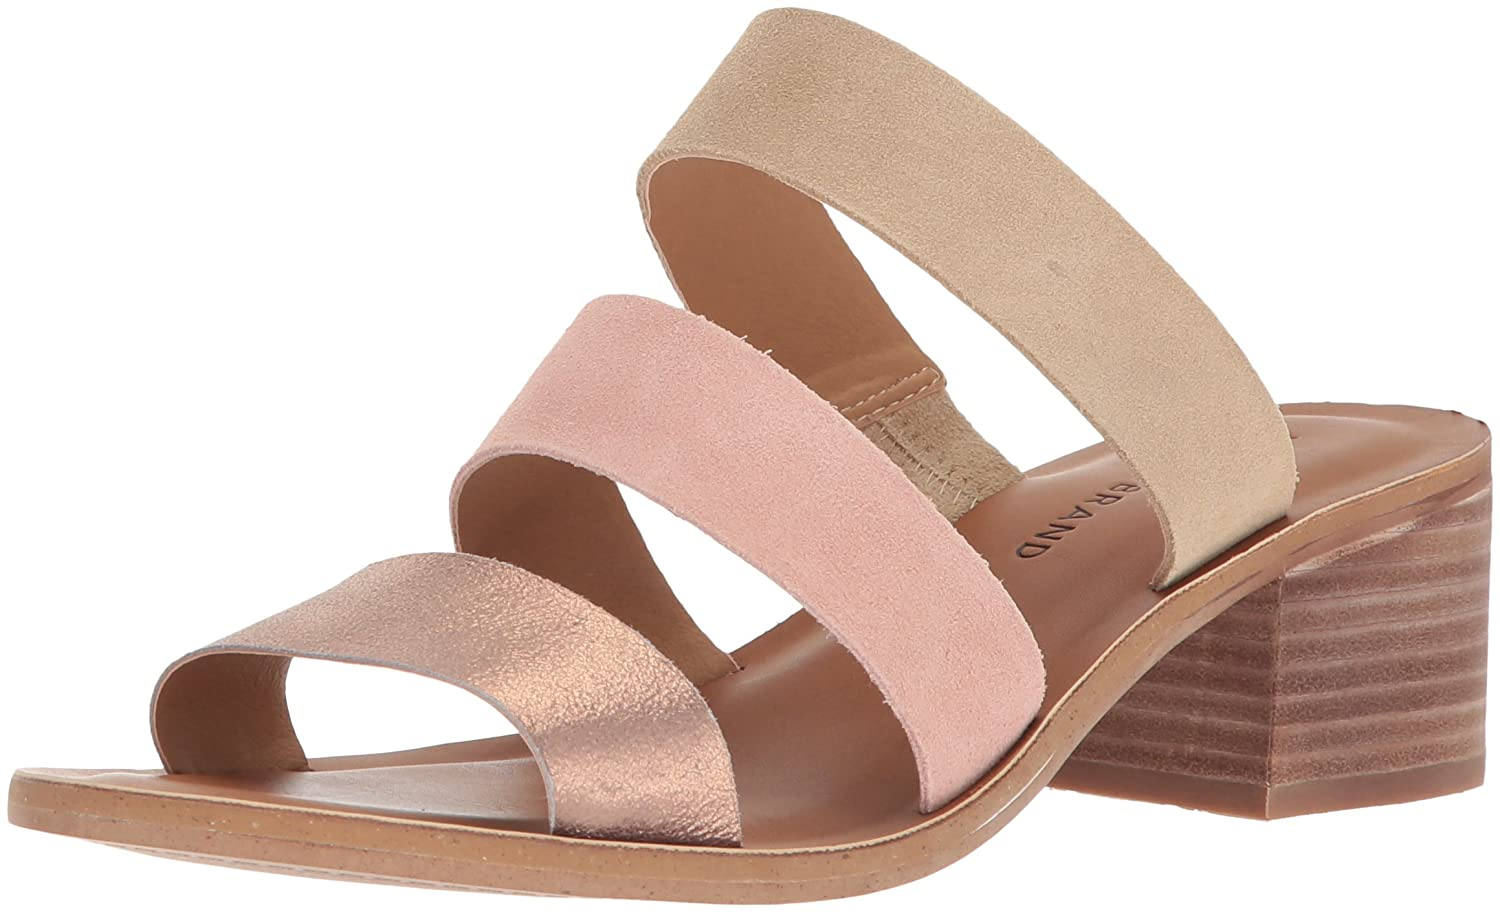 Lucky Brand Femmes Slide Chaussures Couleur Rose Washed Rose Taille 37 EU / 6 Us